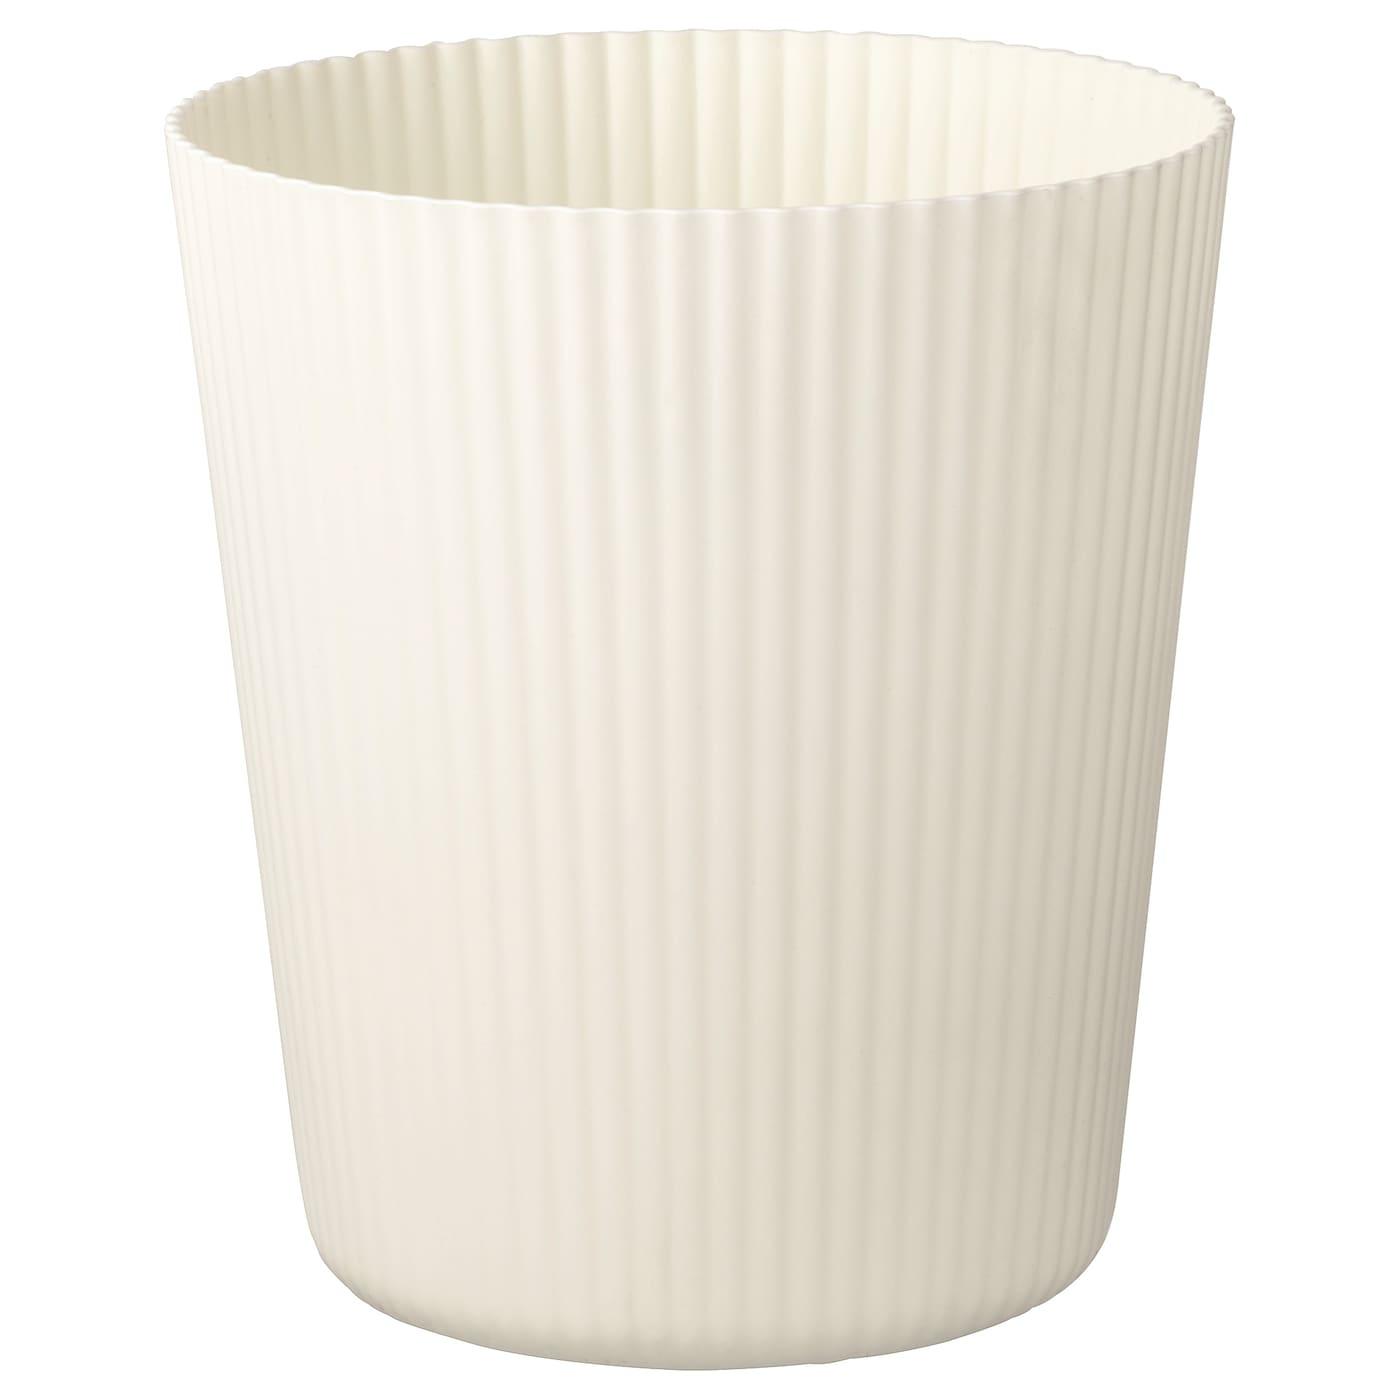 IKEA NEJKON plant pot Decorate your home with plants combined with a plant pot to suit your style.